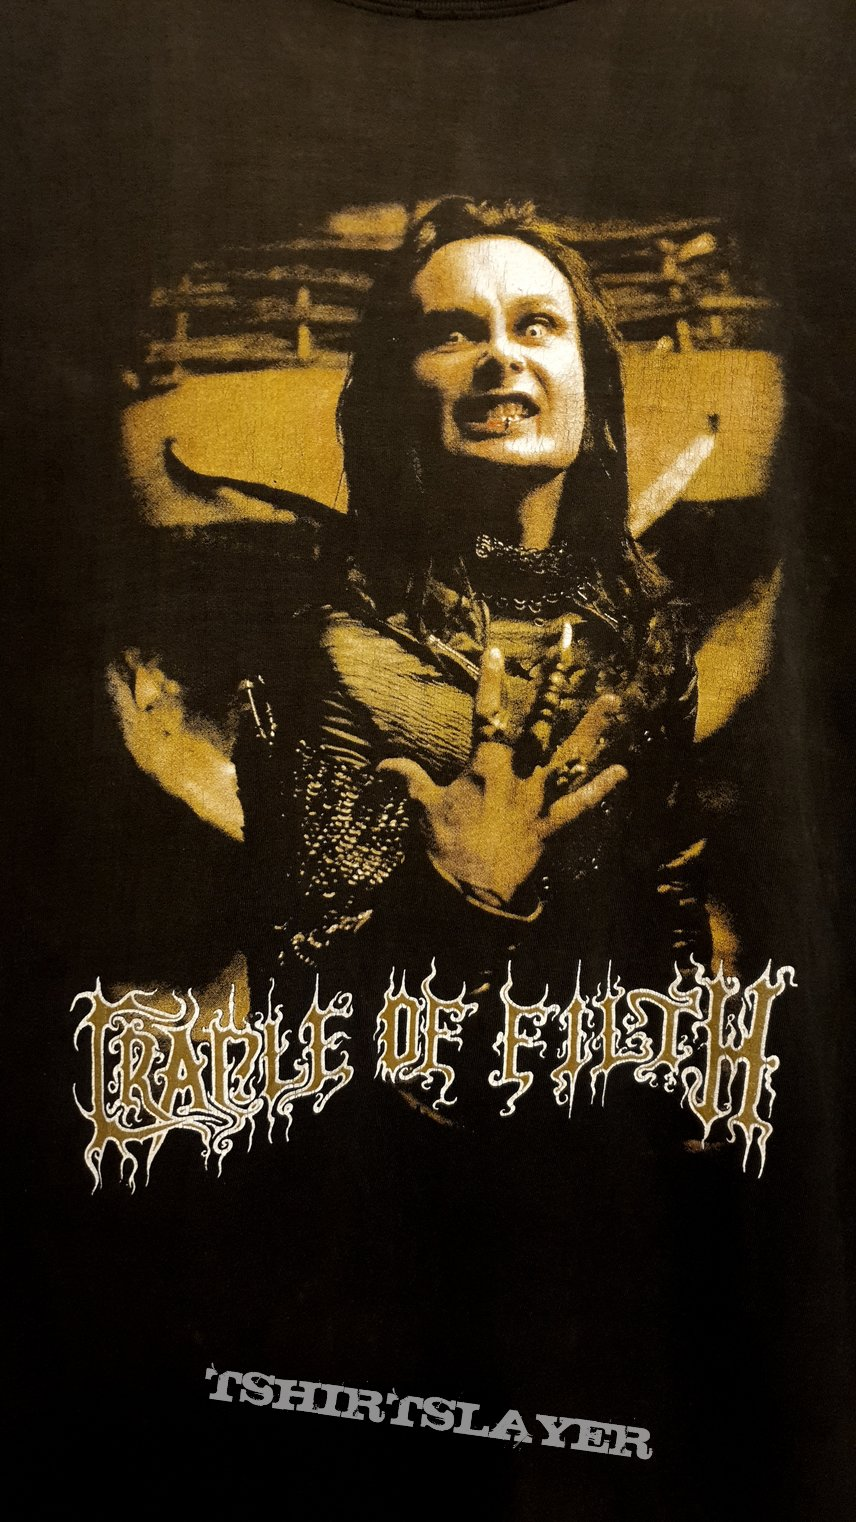 Cradle of filth ❗INFO NEEDED